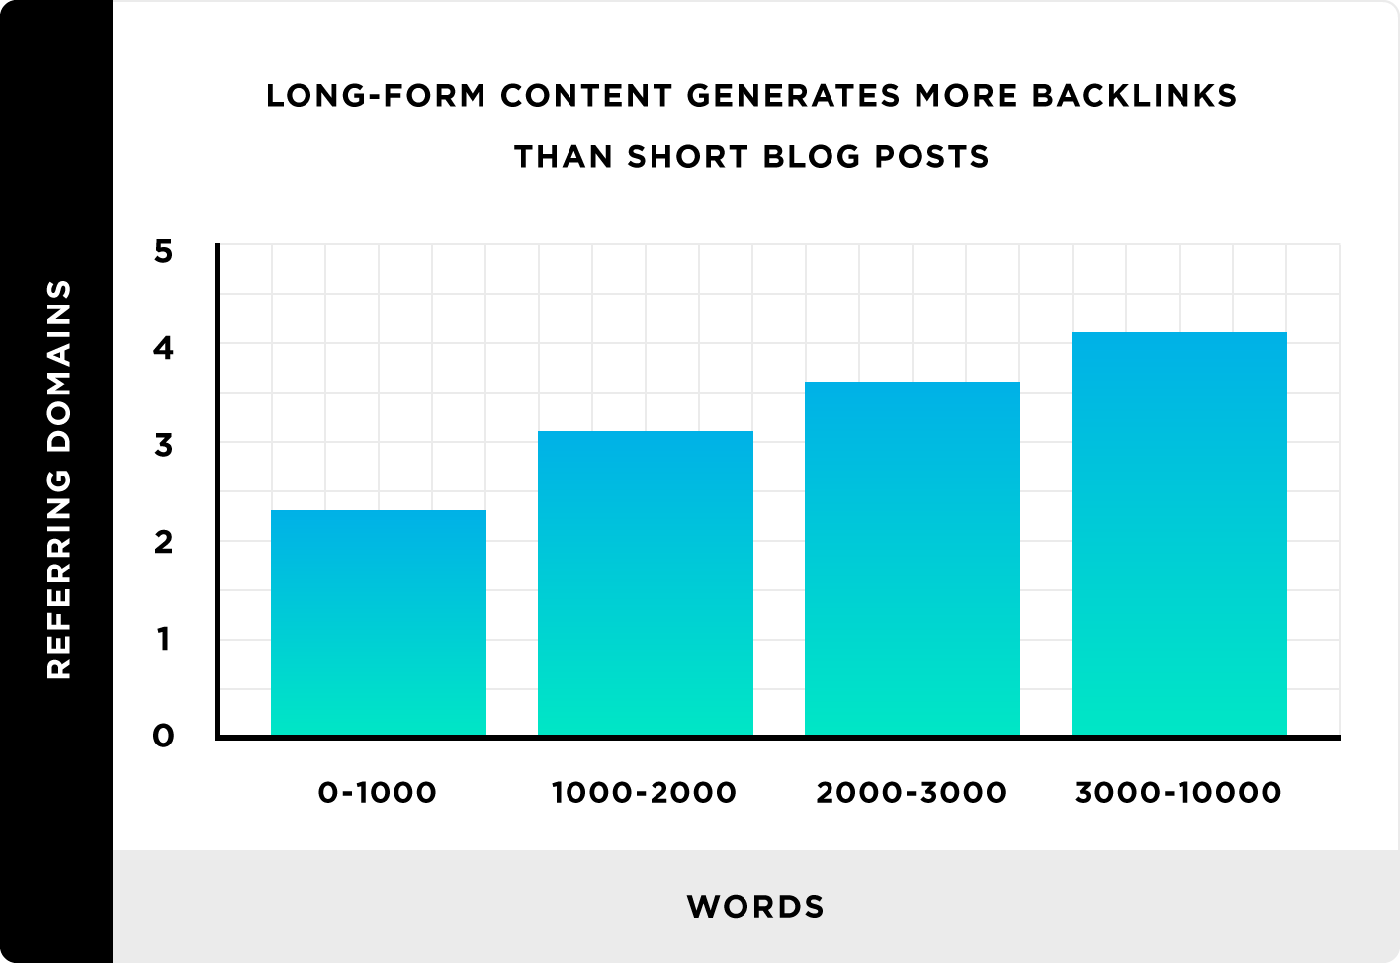 Long-form content generates more backlinks than short blog posts